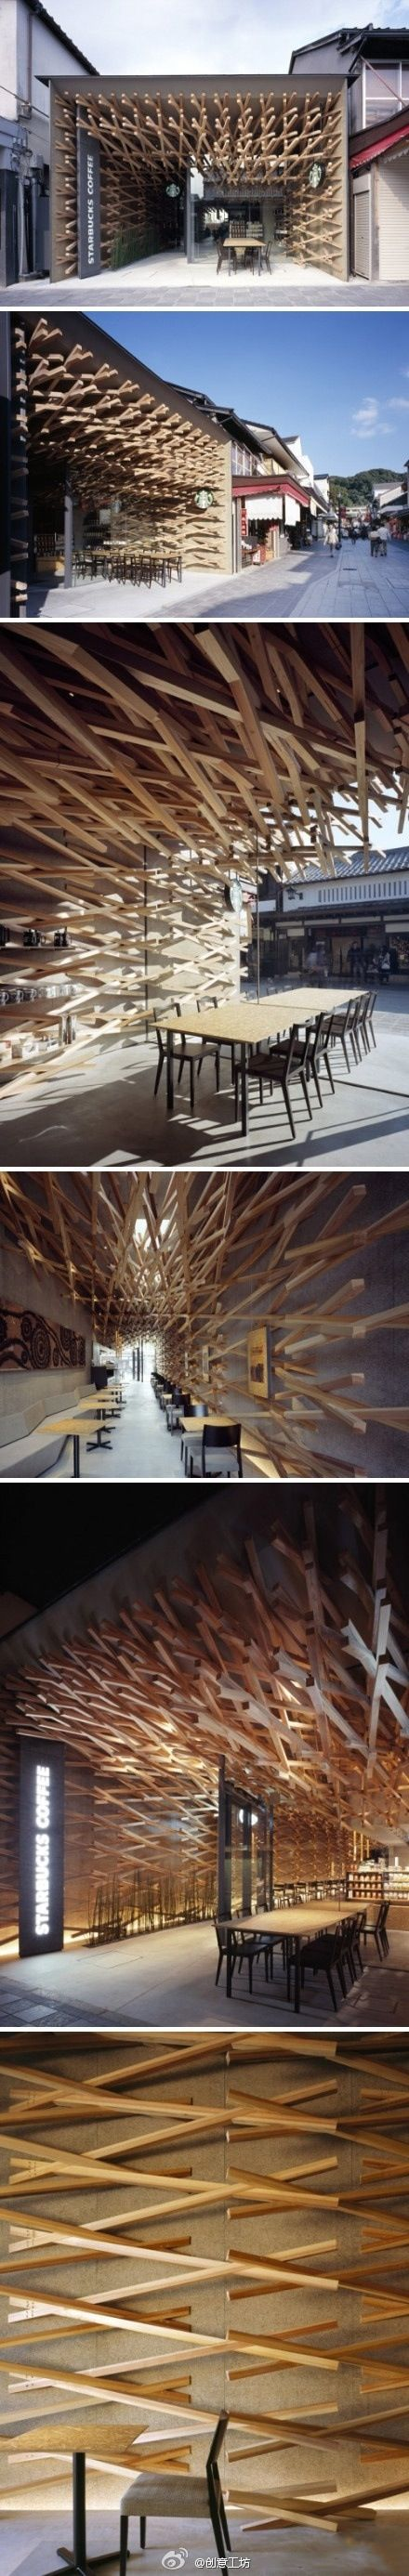 """Coffee ... Tokyo-based and world-renowned architect Kengo Kuma has designed a Starbucks store in Japan located in Fukuoka Perfecture, on the street leading straight to a shrine called Dazaifu Tenmagu, dedicated to a Japanese deity. More than 2,000 woven cedar sticks, creating a loosely woven lattice that extends beyond the storefront's edge. The shop's design is, according to Kuma the """"fusion of traditional and contemporary and is made up of natural materials both traditional and modern""""."""